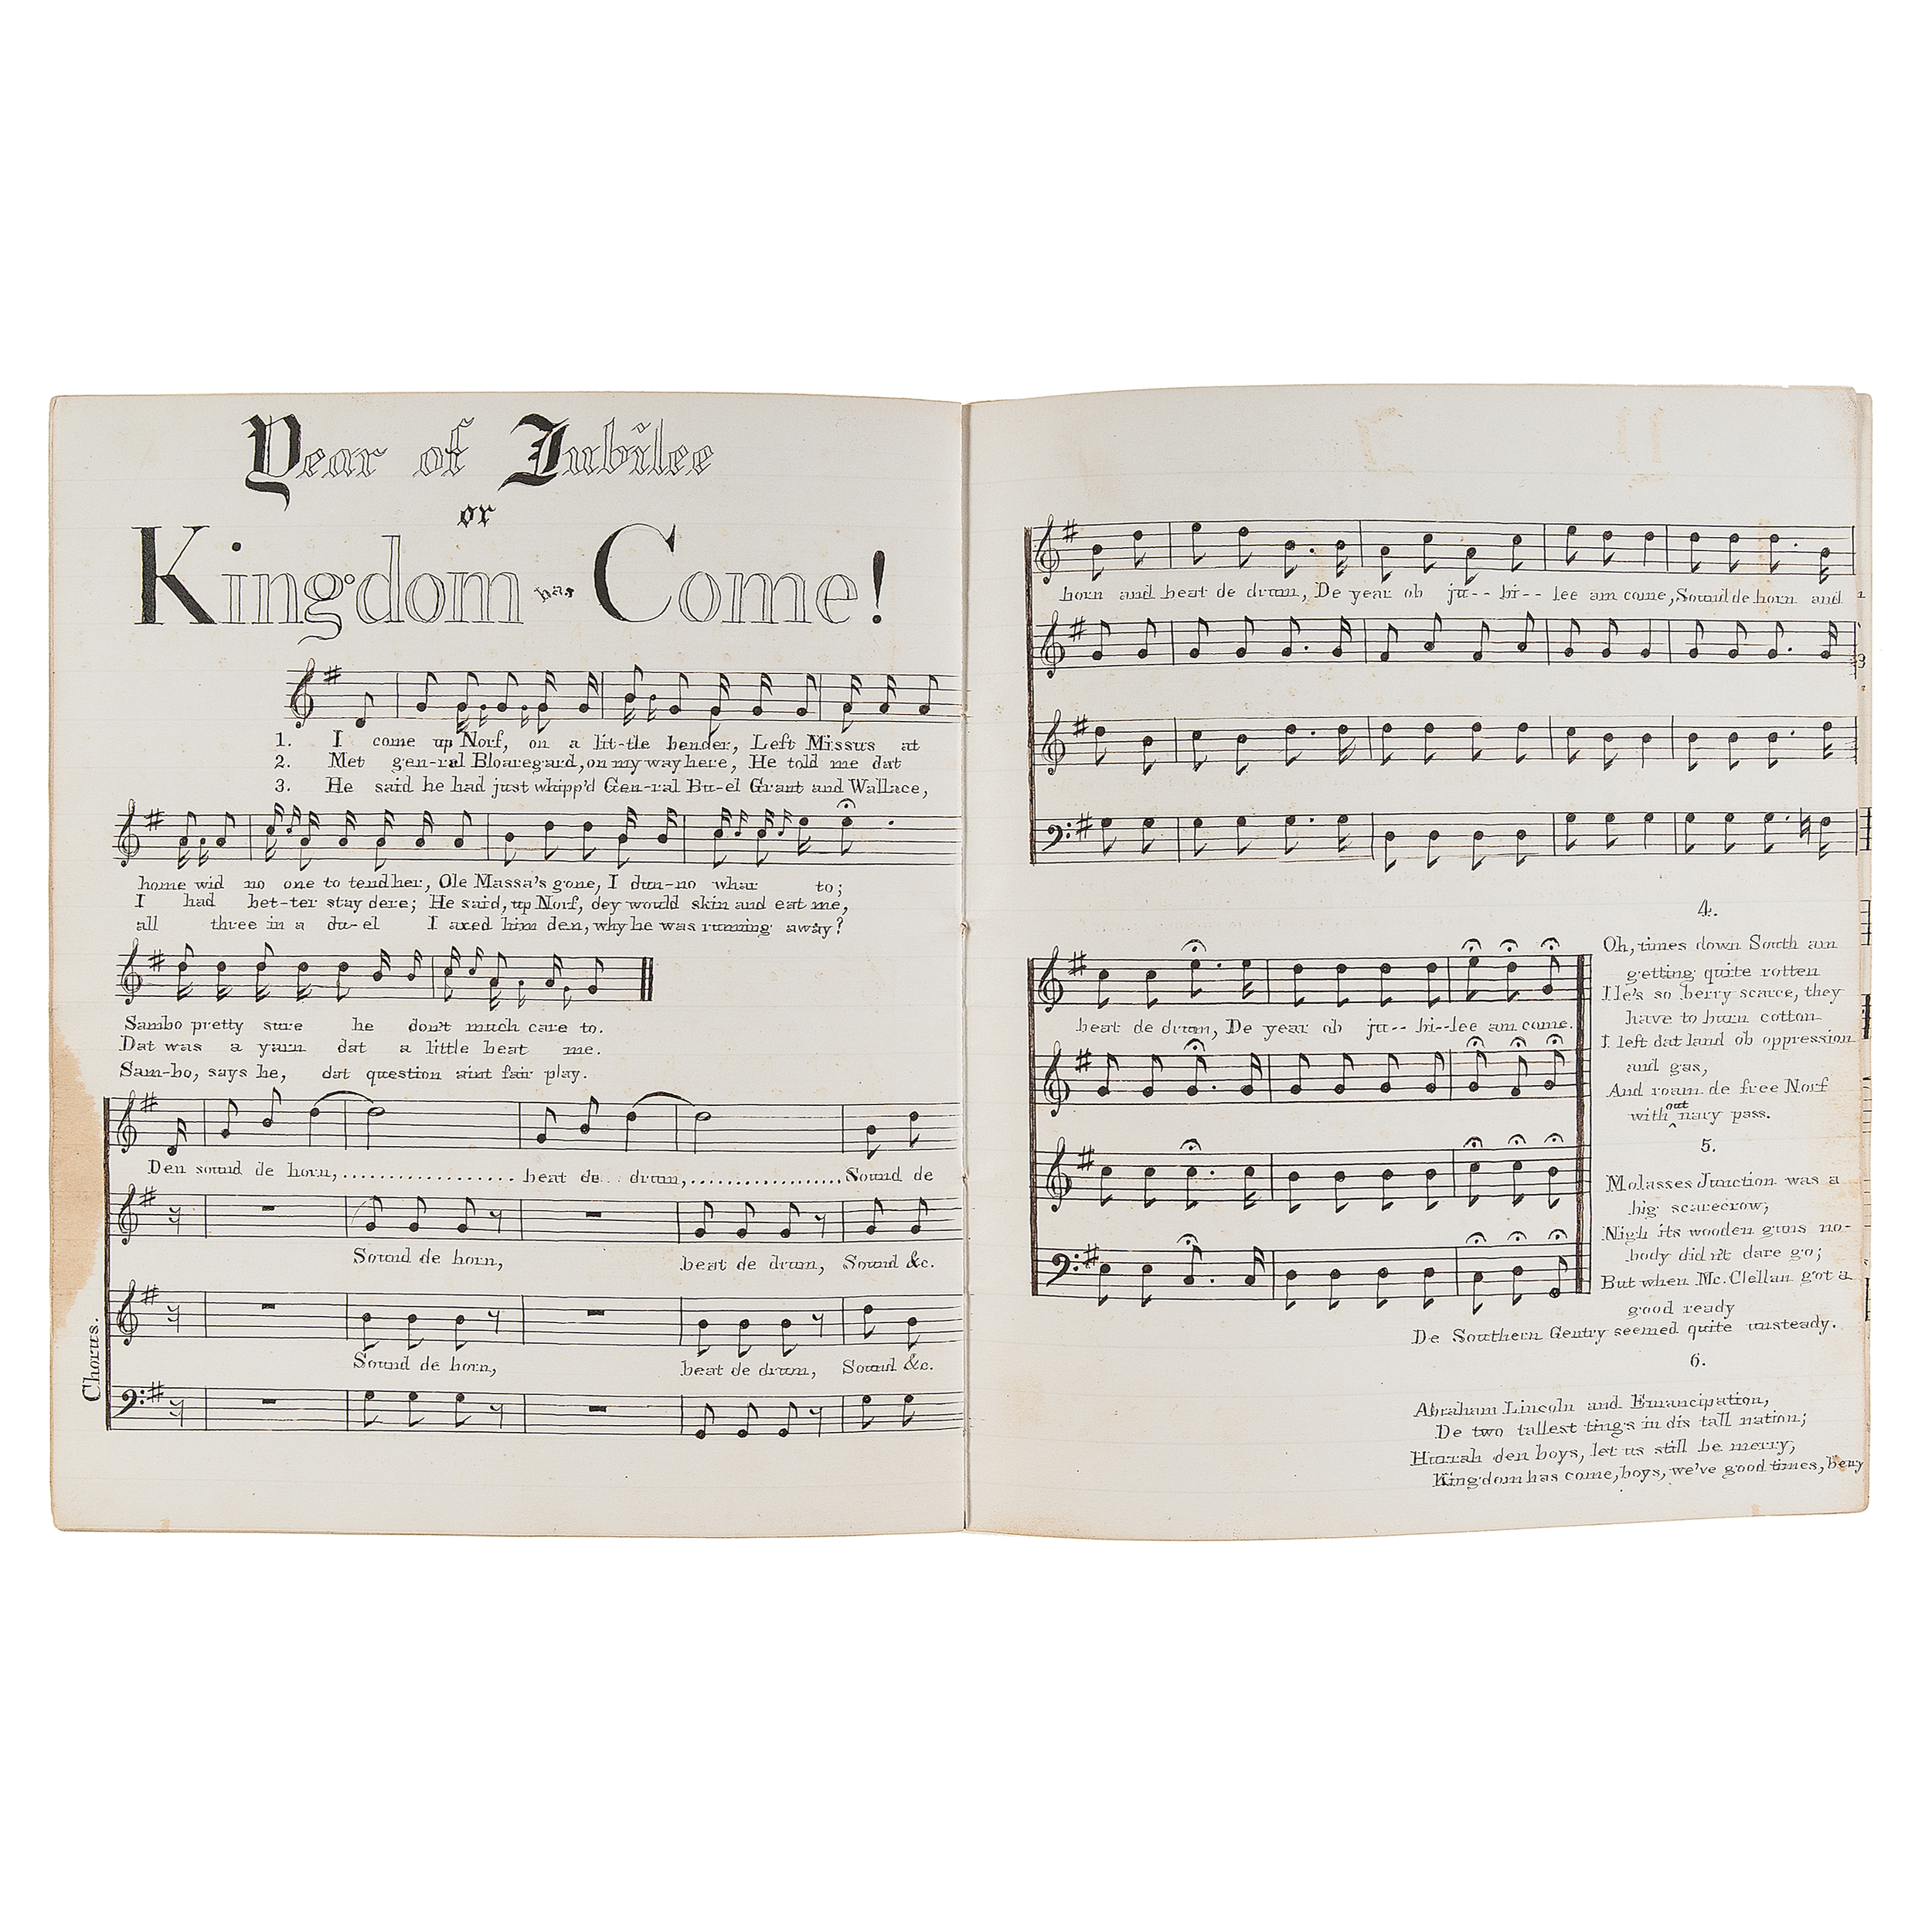 Hand Made Union Patriotic Song Book Containing